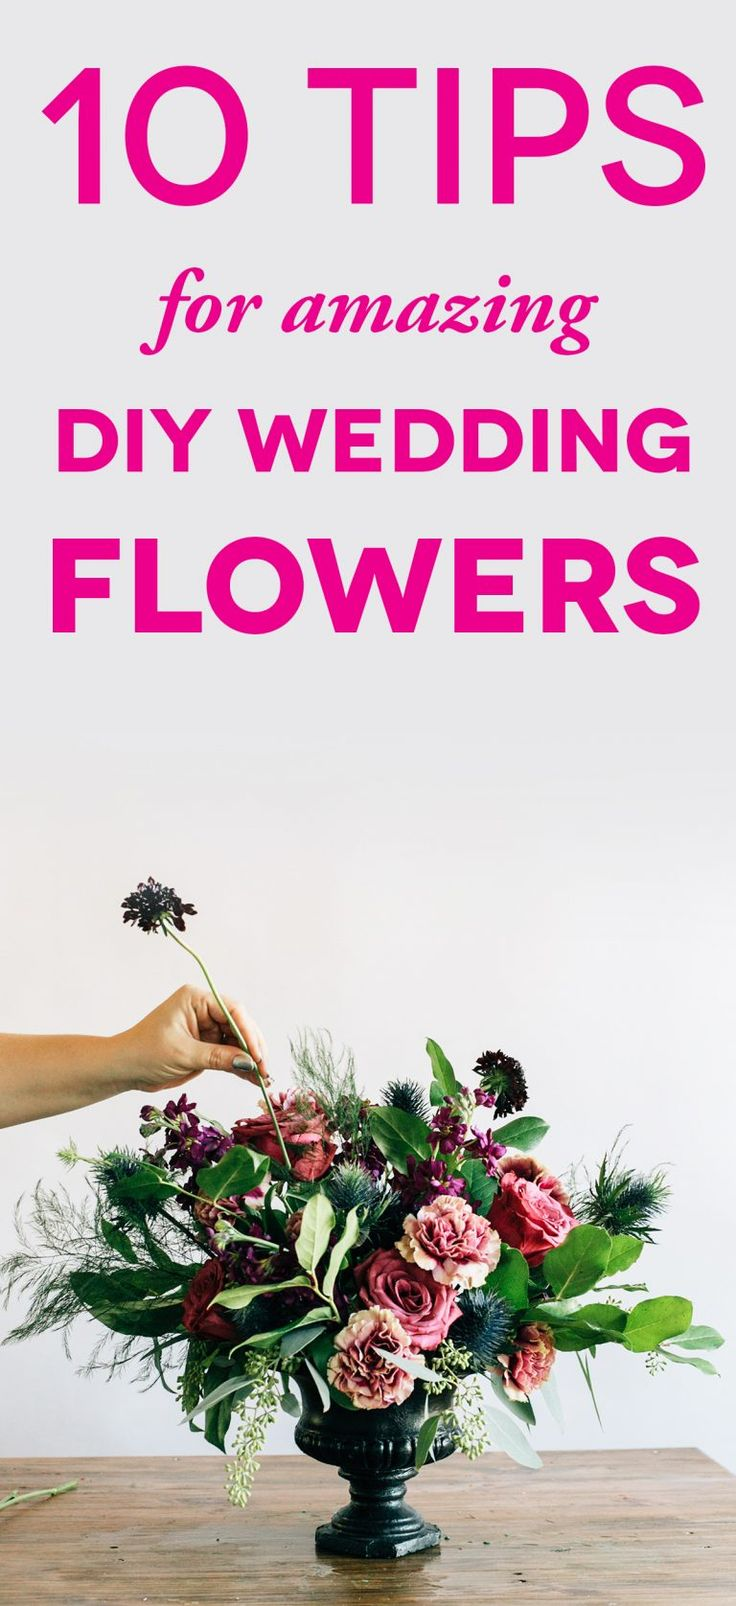 picture of someone arranging flowers with text